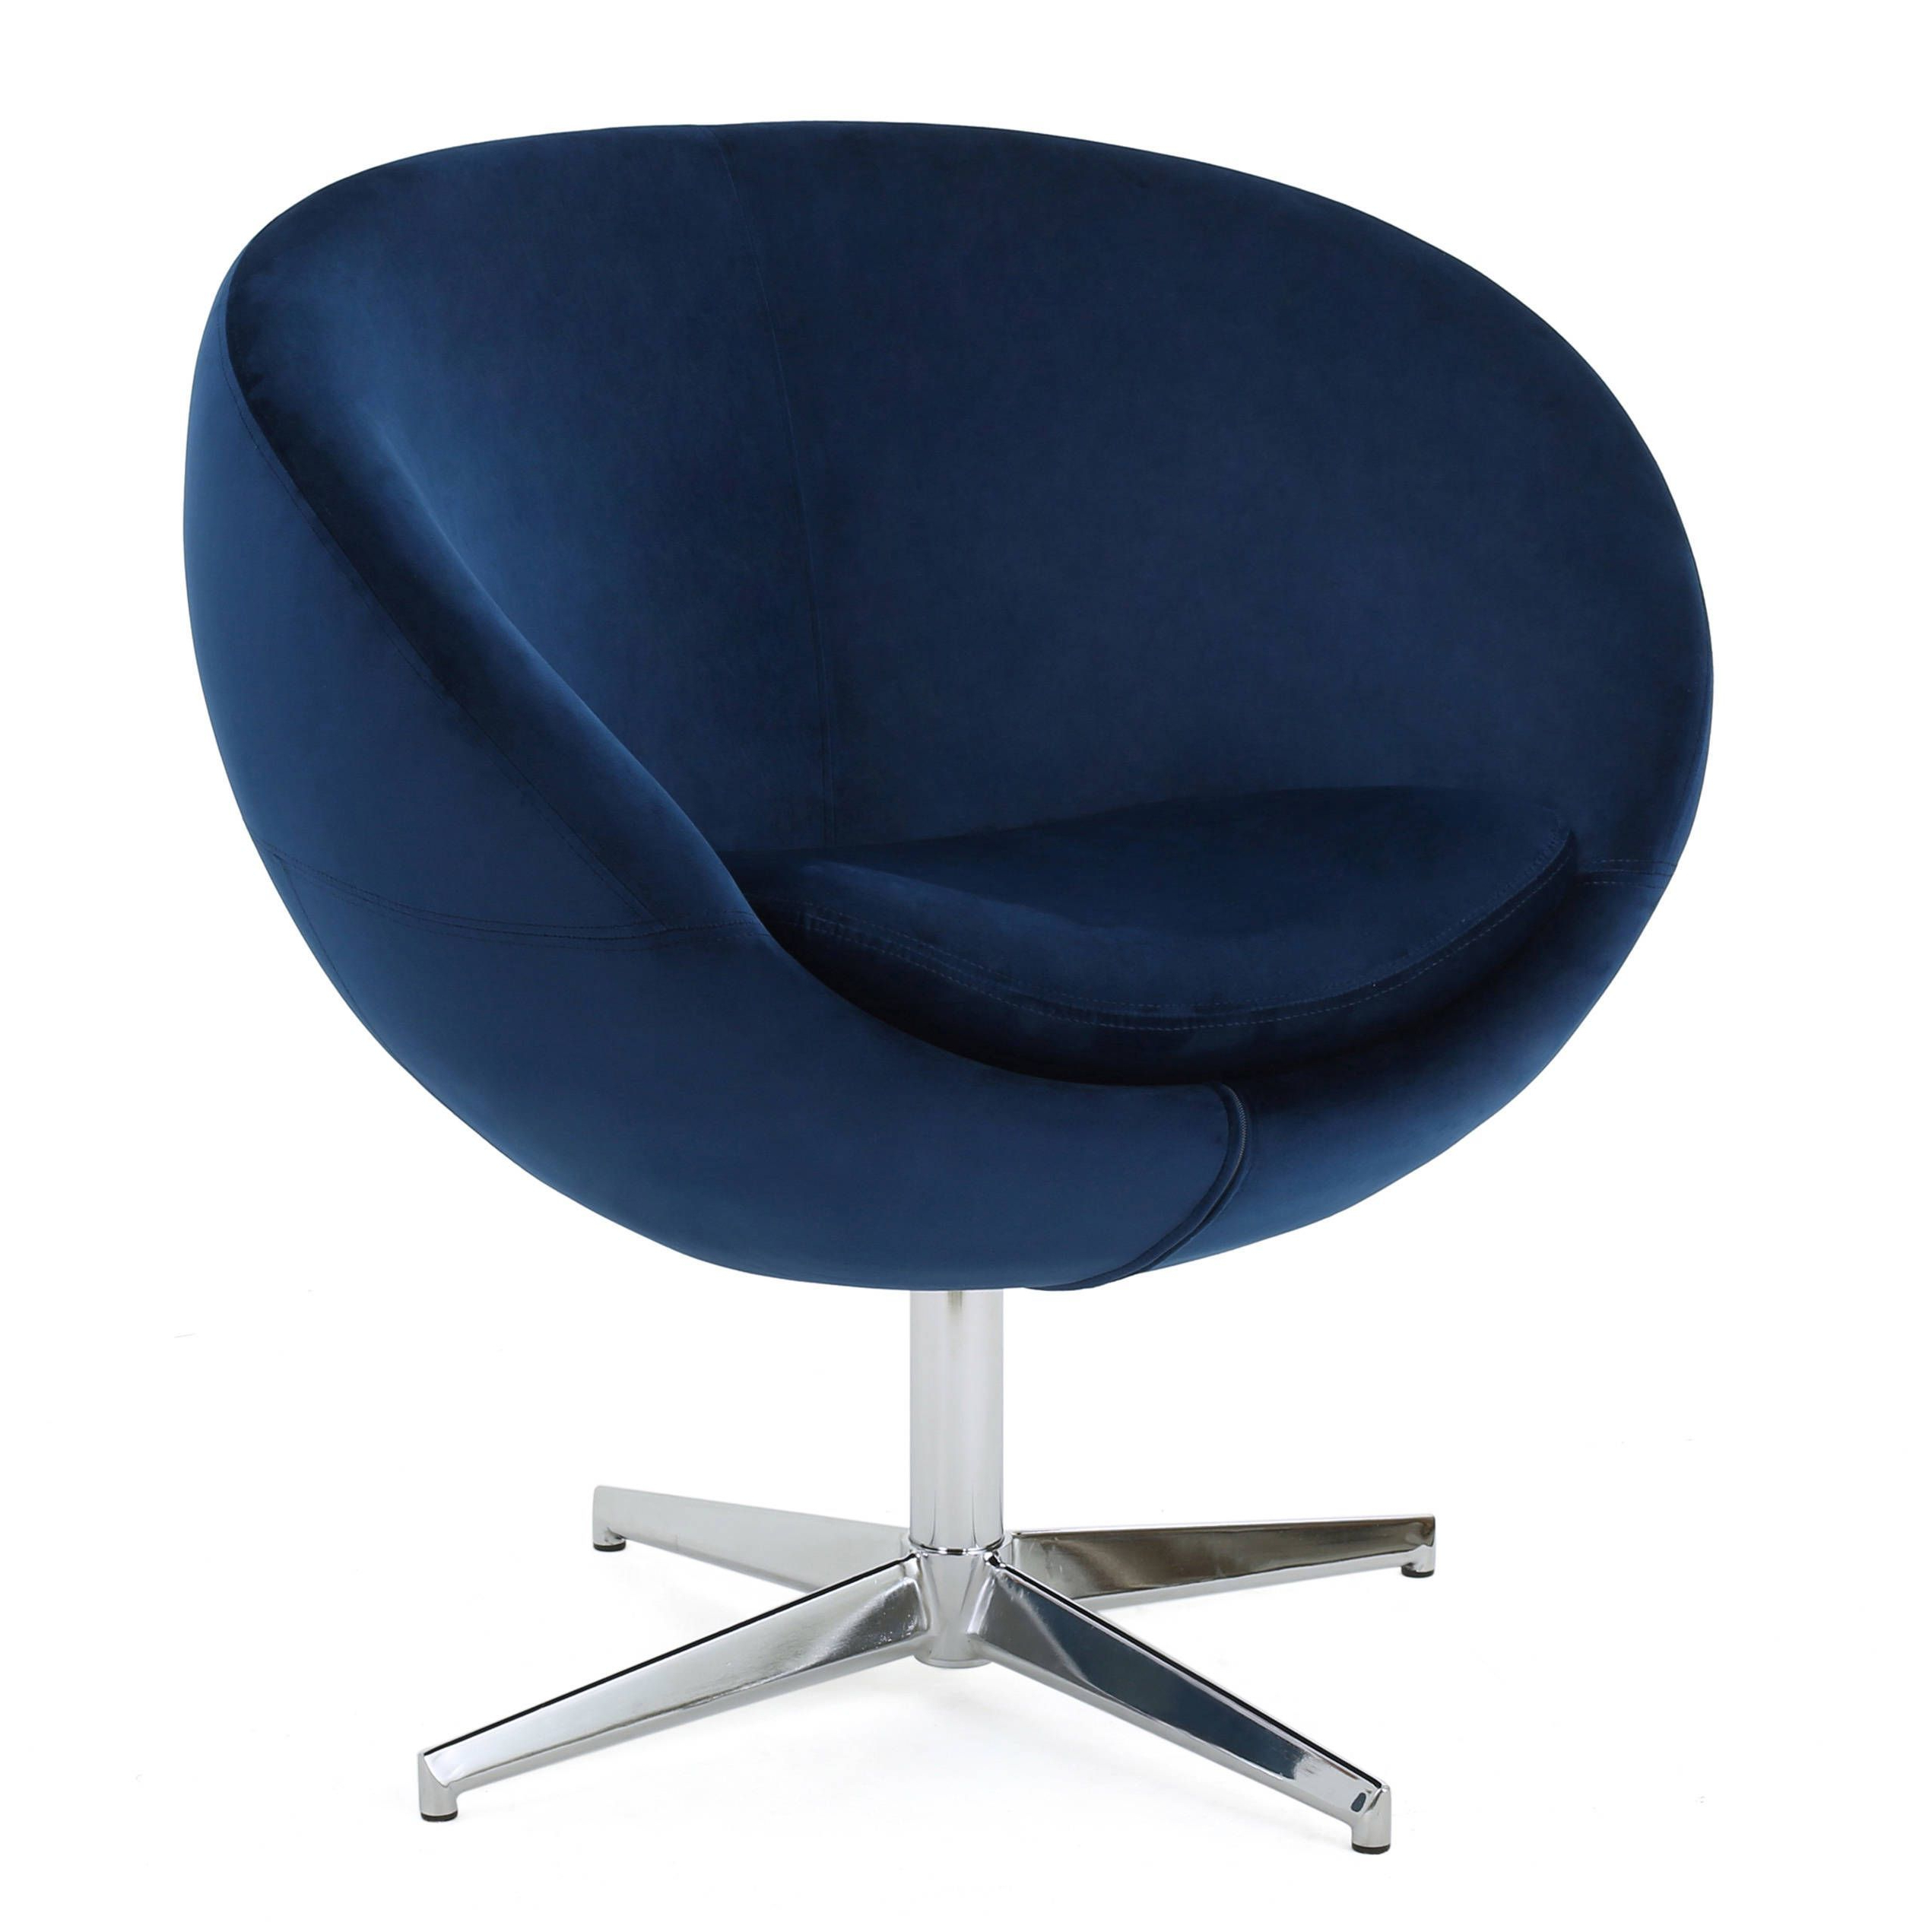 Chill Swivel Chairs With Metal Base Inside Well Known Isla Velvet Fabric Roundback Modern Chairchristopher Knight Home (View 7 of 20)